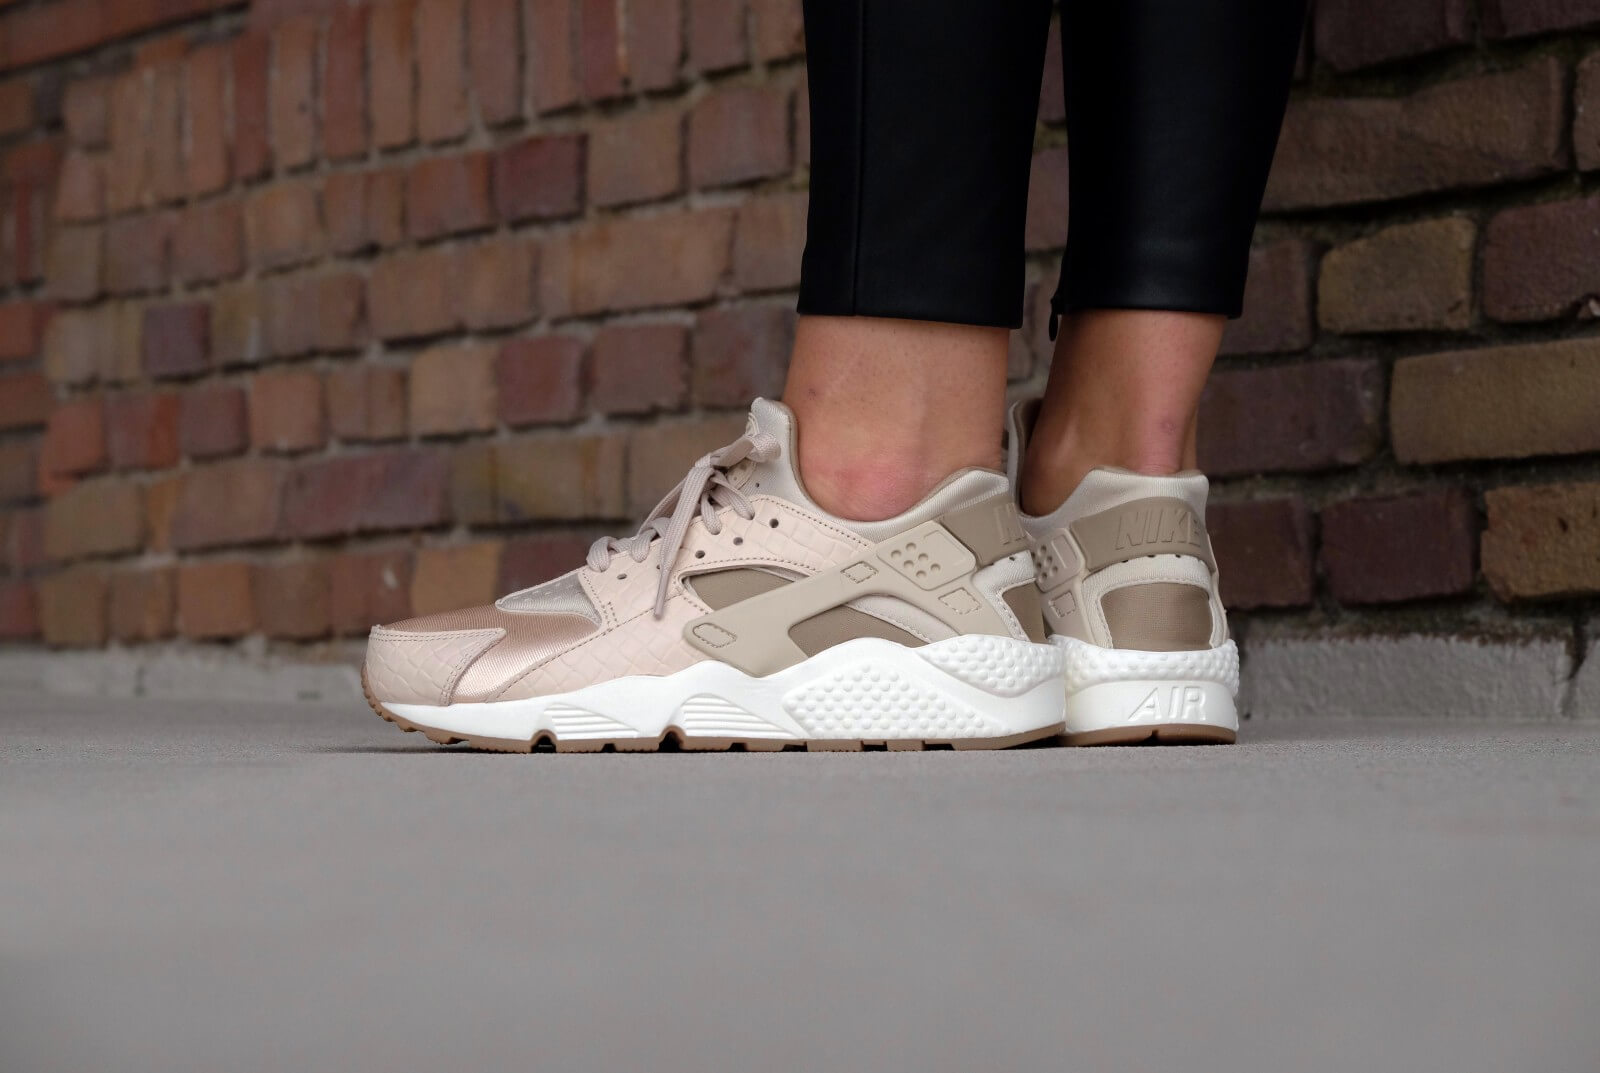 size 40 pretty cheap best sneakers Nike WMNS Air Huarache Run PRM Oatmeal/Khaki-Sail-Gum - 683818-102